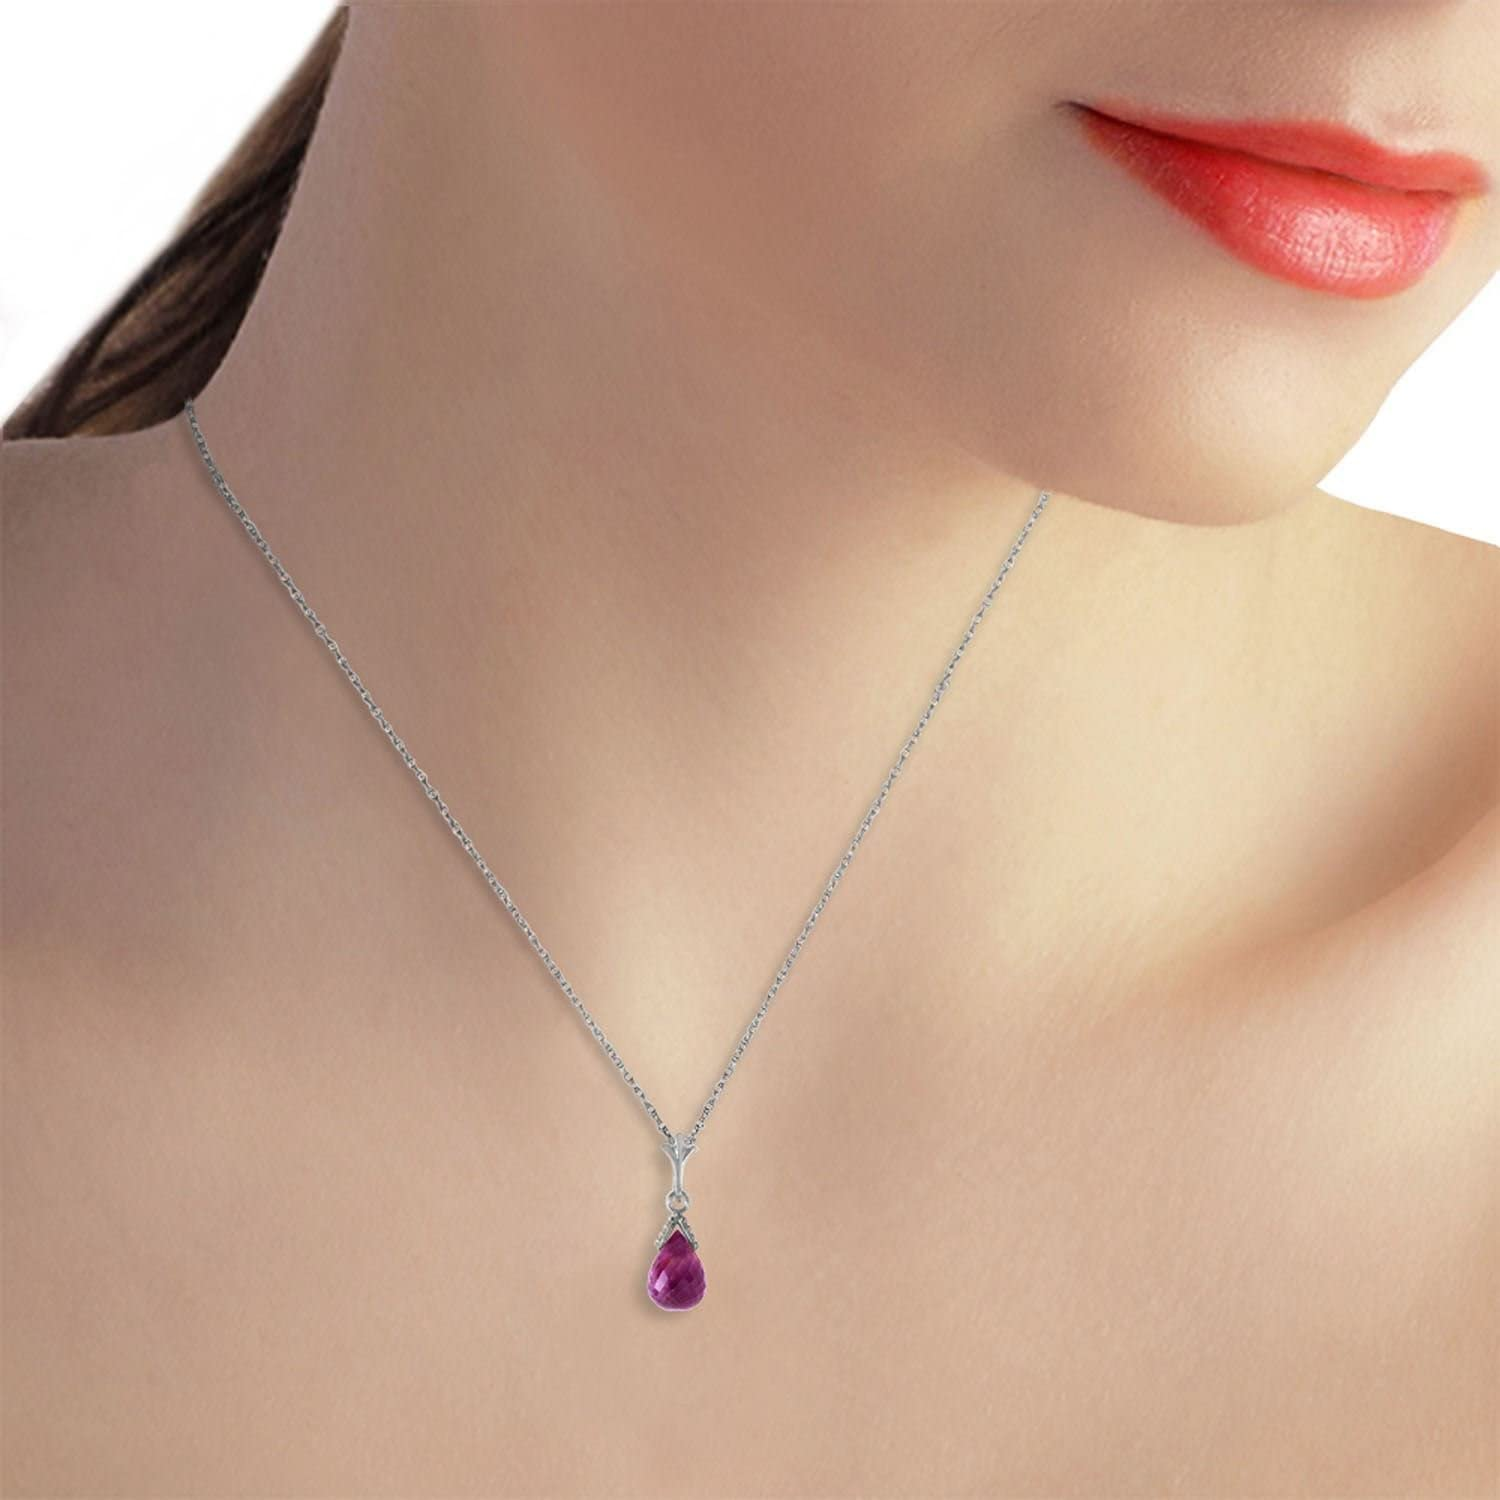 ALARRI 2.3 Carat 14K Solid White Gold Necklace Briolette Purple Amethyst with 24 Inch Chain Length